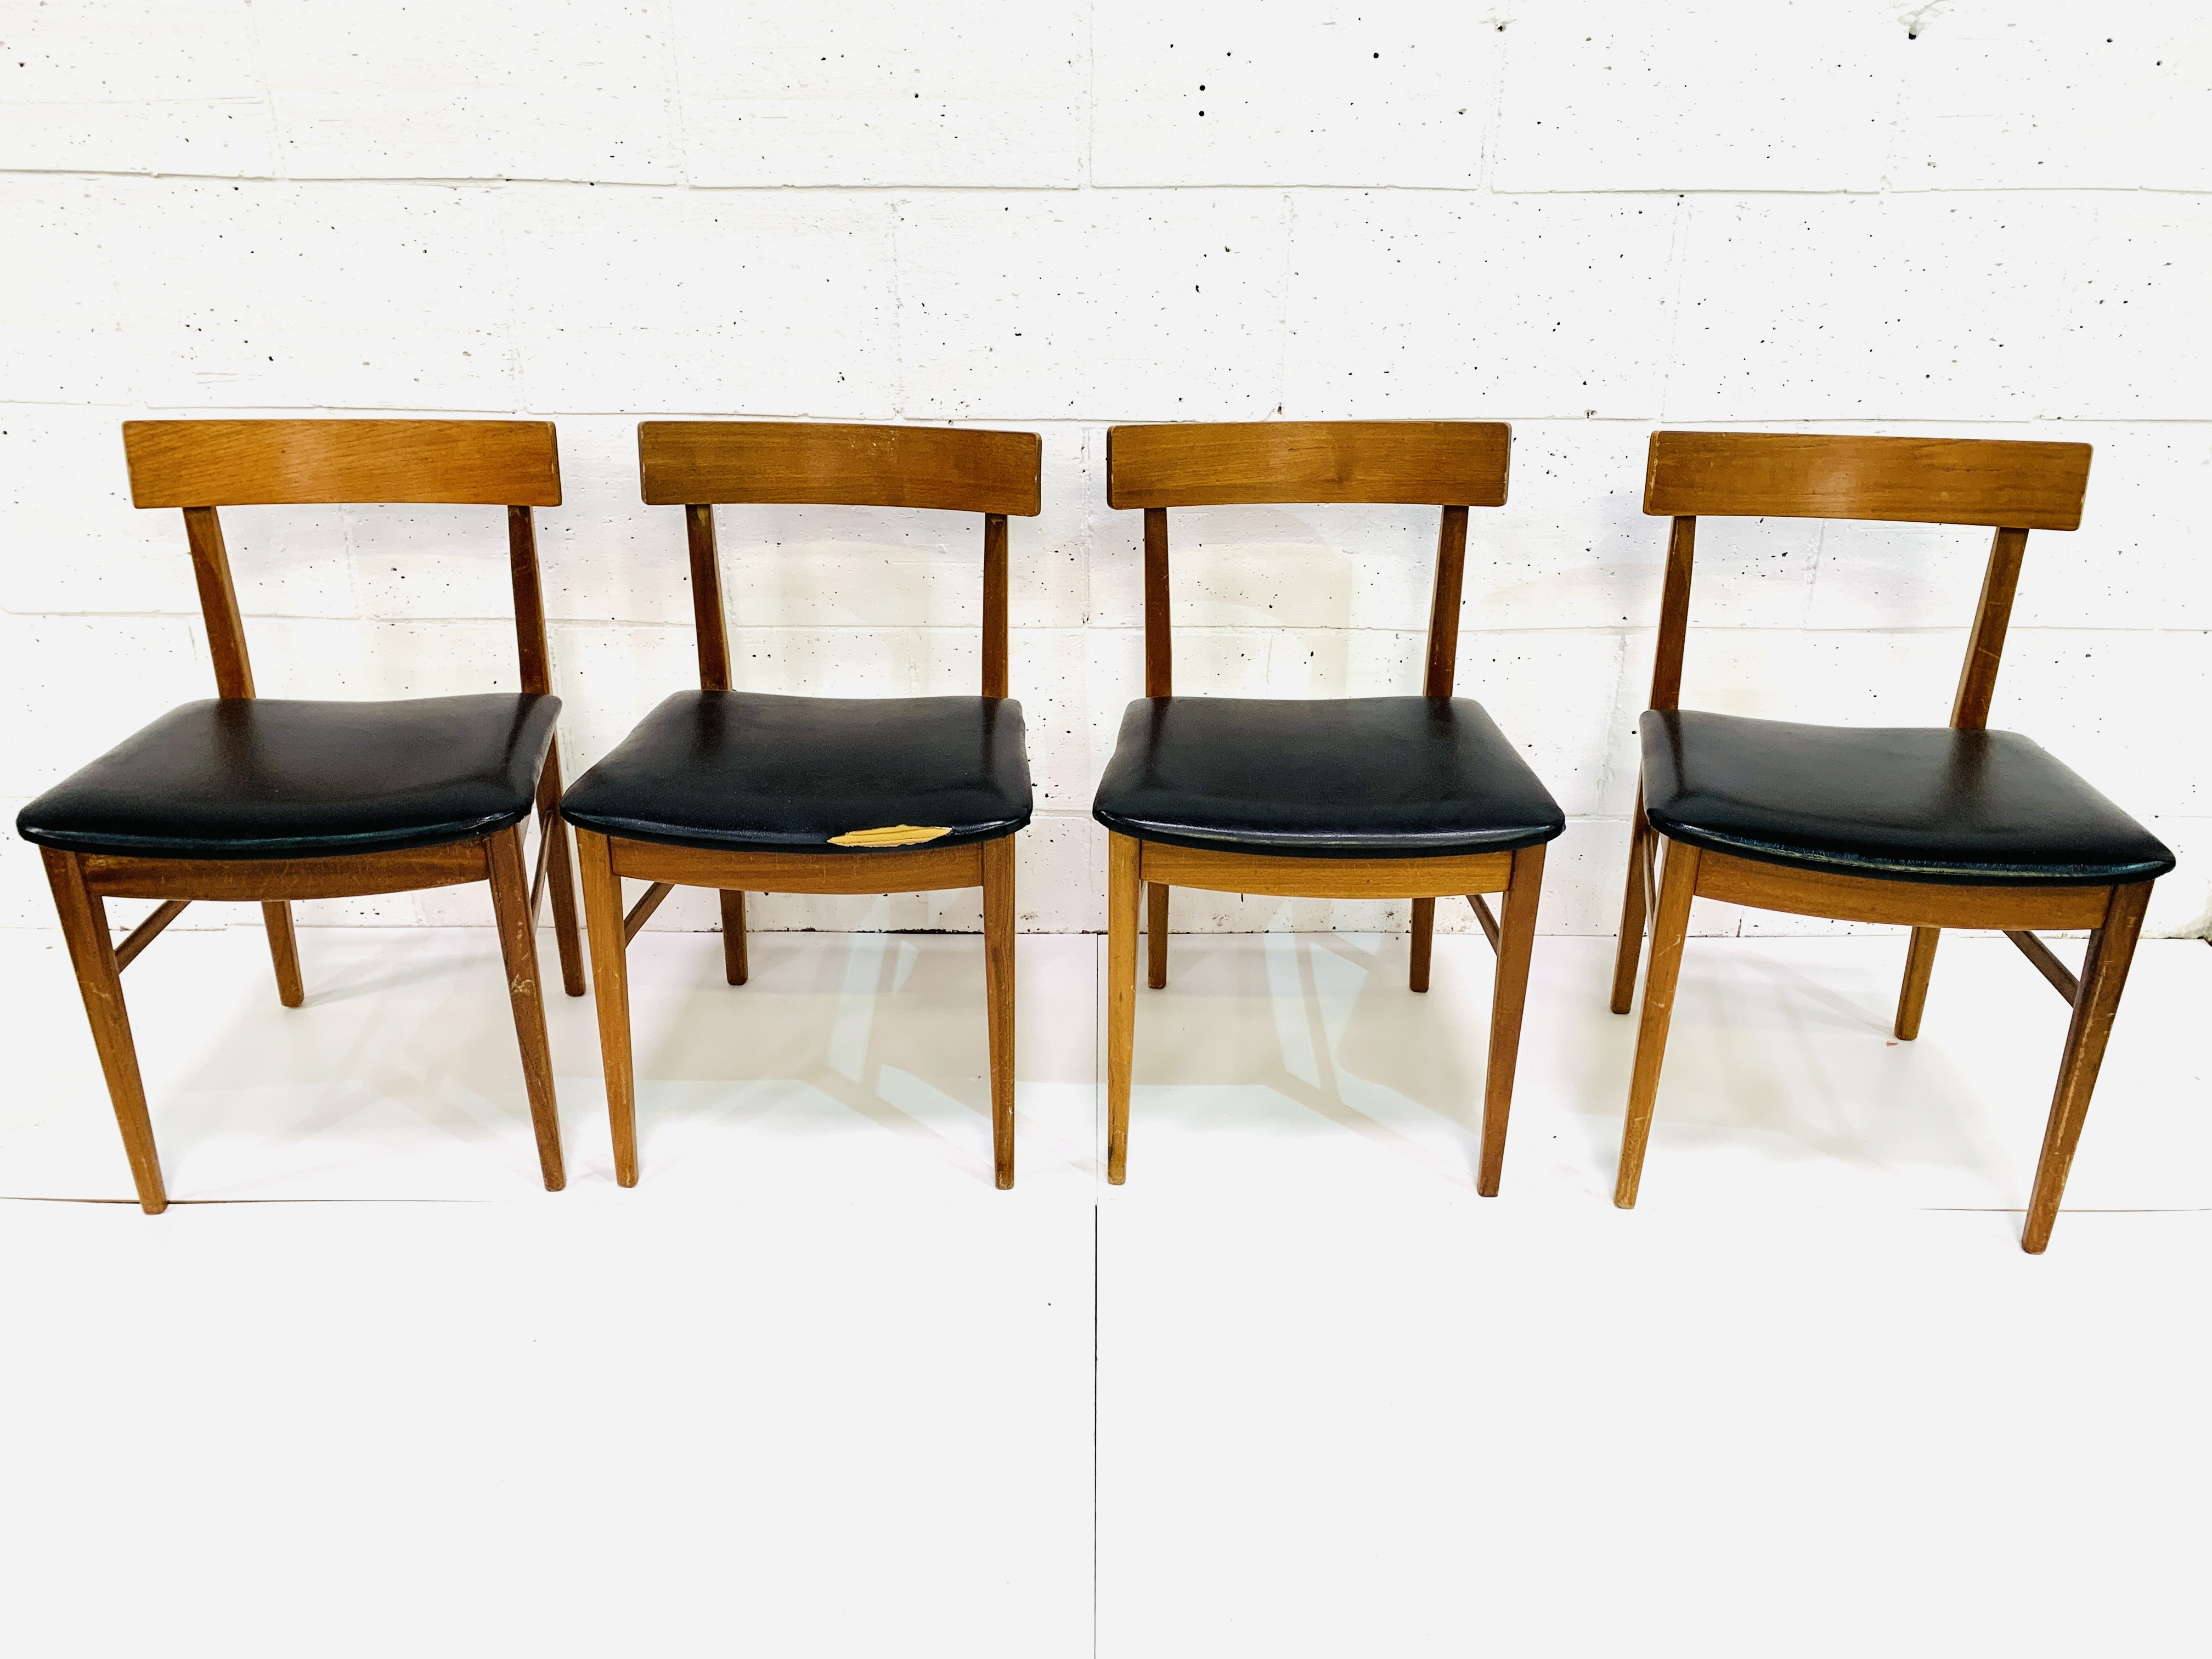 Four teak framed curved back dining chairs - Image 2 of 3